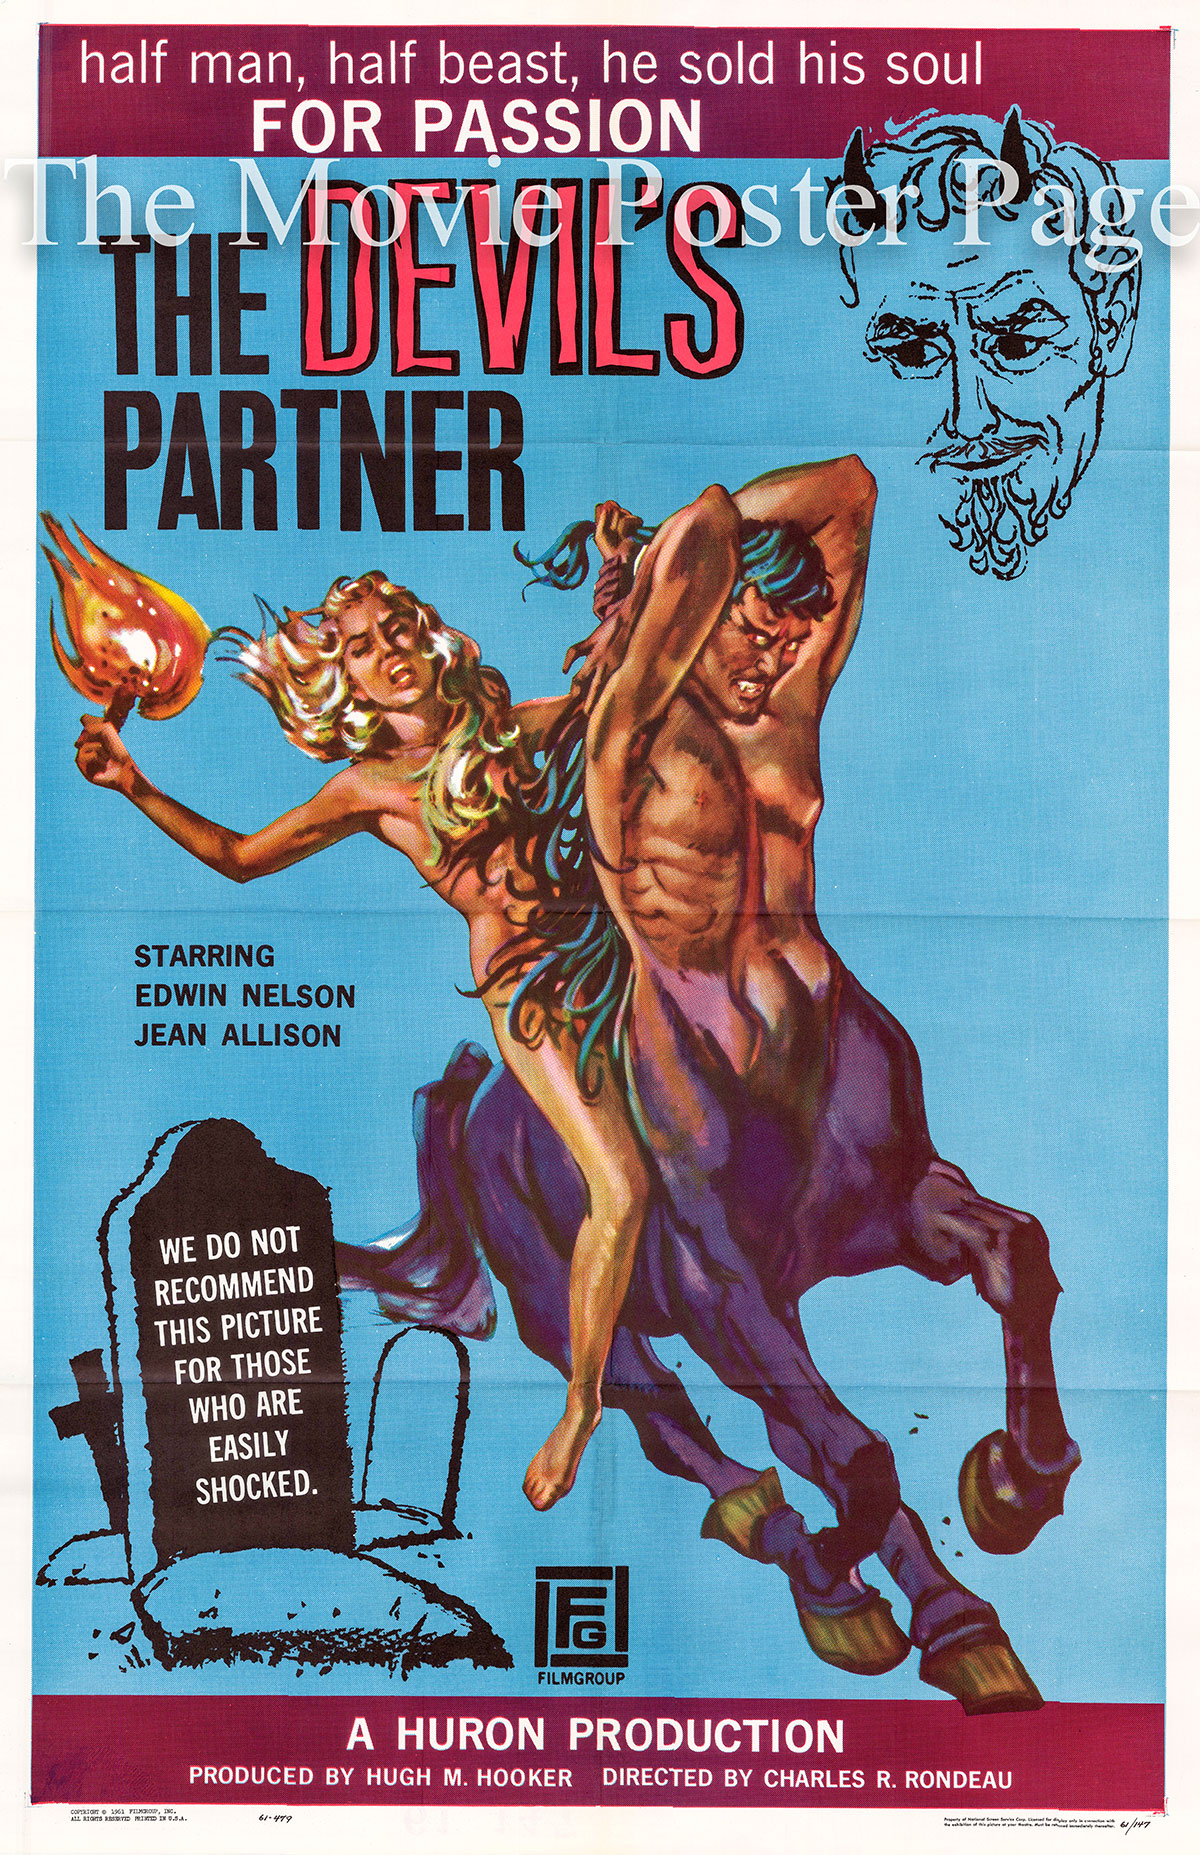 Pictured is a US promotional one-sheet poster for the 1961 Charles R. Rondeau film The Devil's Partner, starring Edwin Nelson as Nick Richards and Pete Jensen.